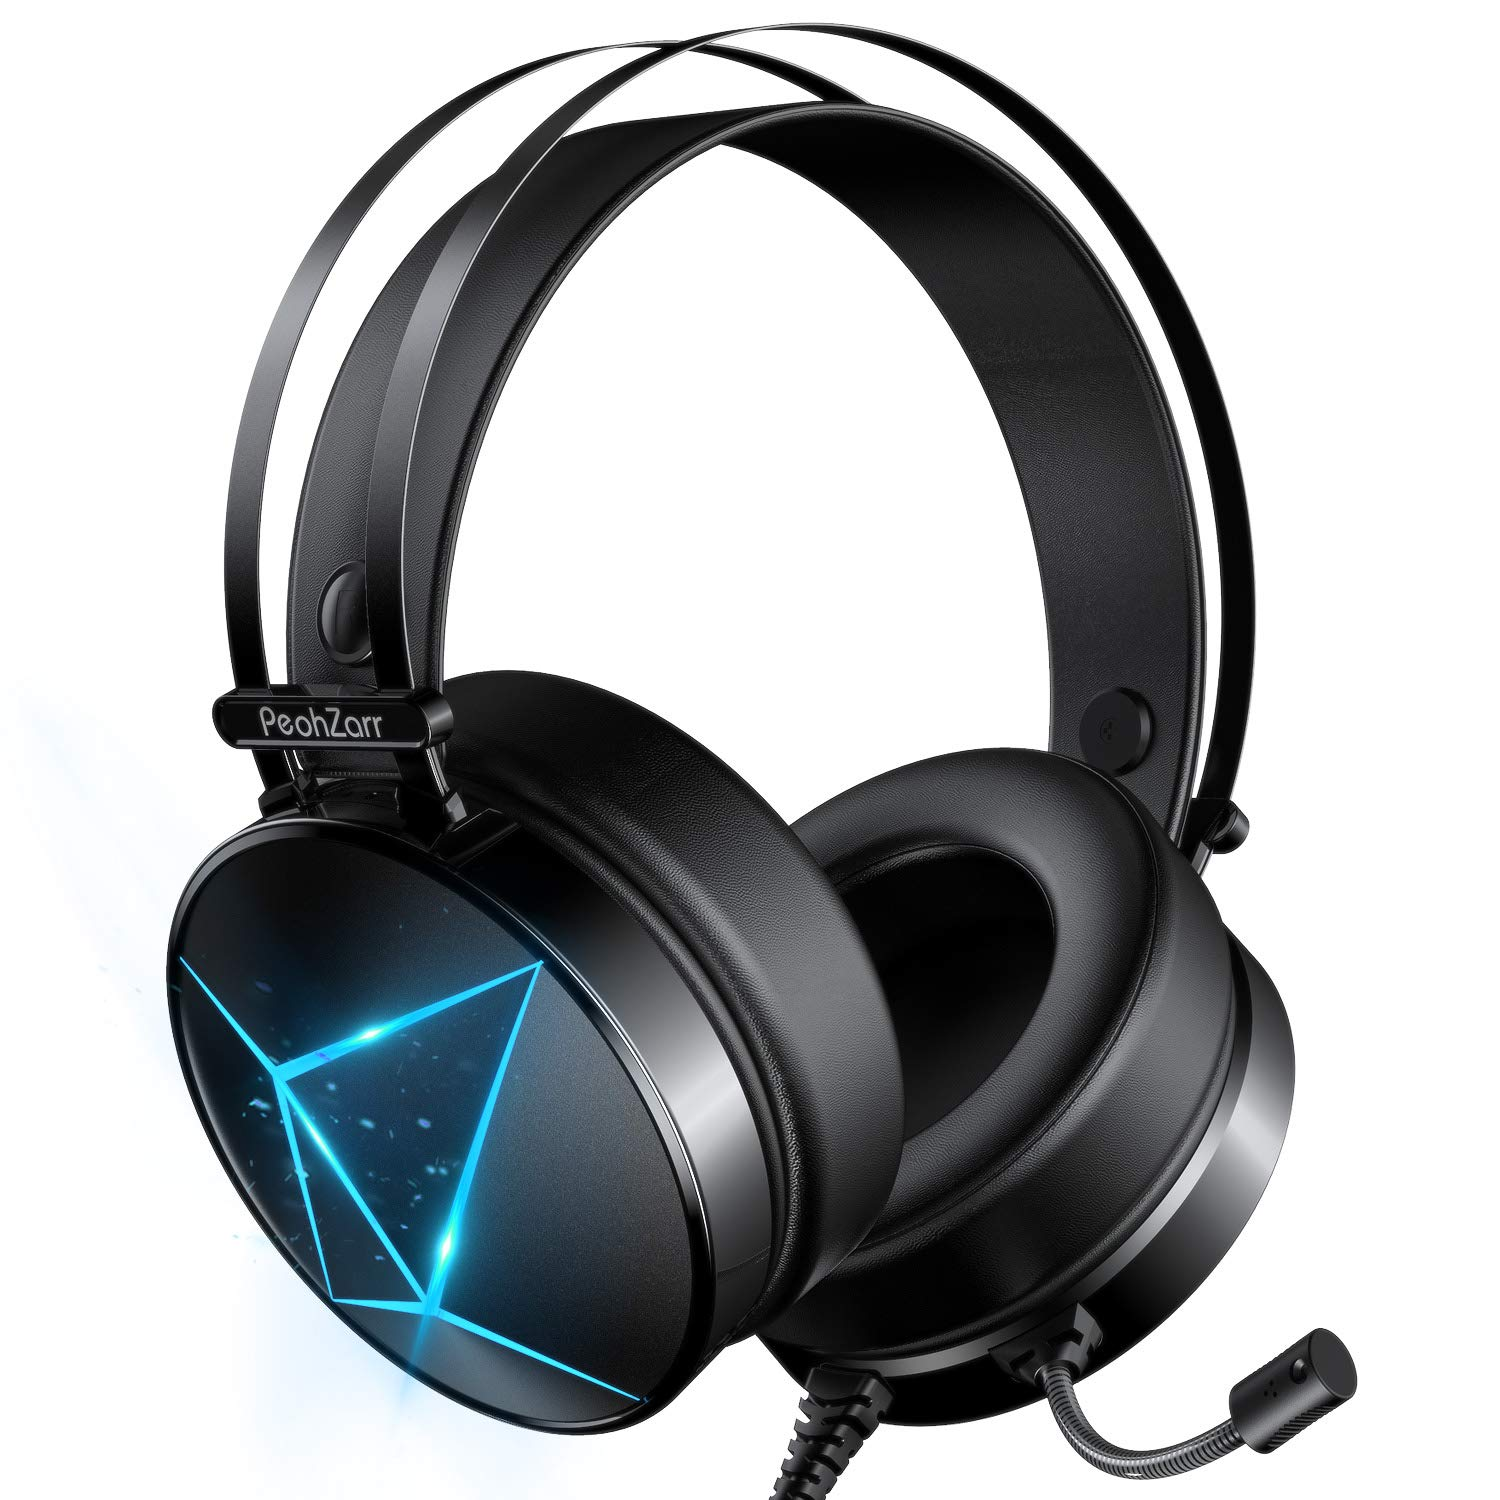 PeohZarr Gaming Headset One Headset PS4 Headset with 7.1 Surround Sound PC Headset with Mic & Light, Over Ear Headphones…